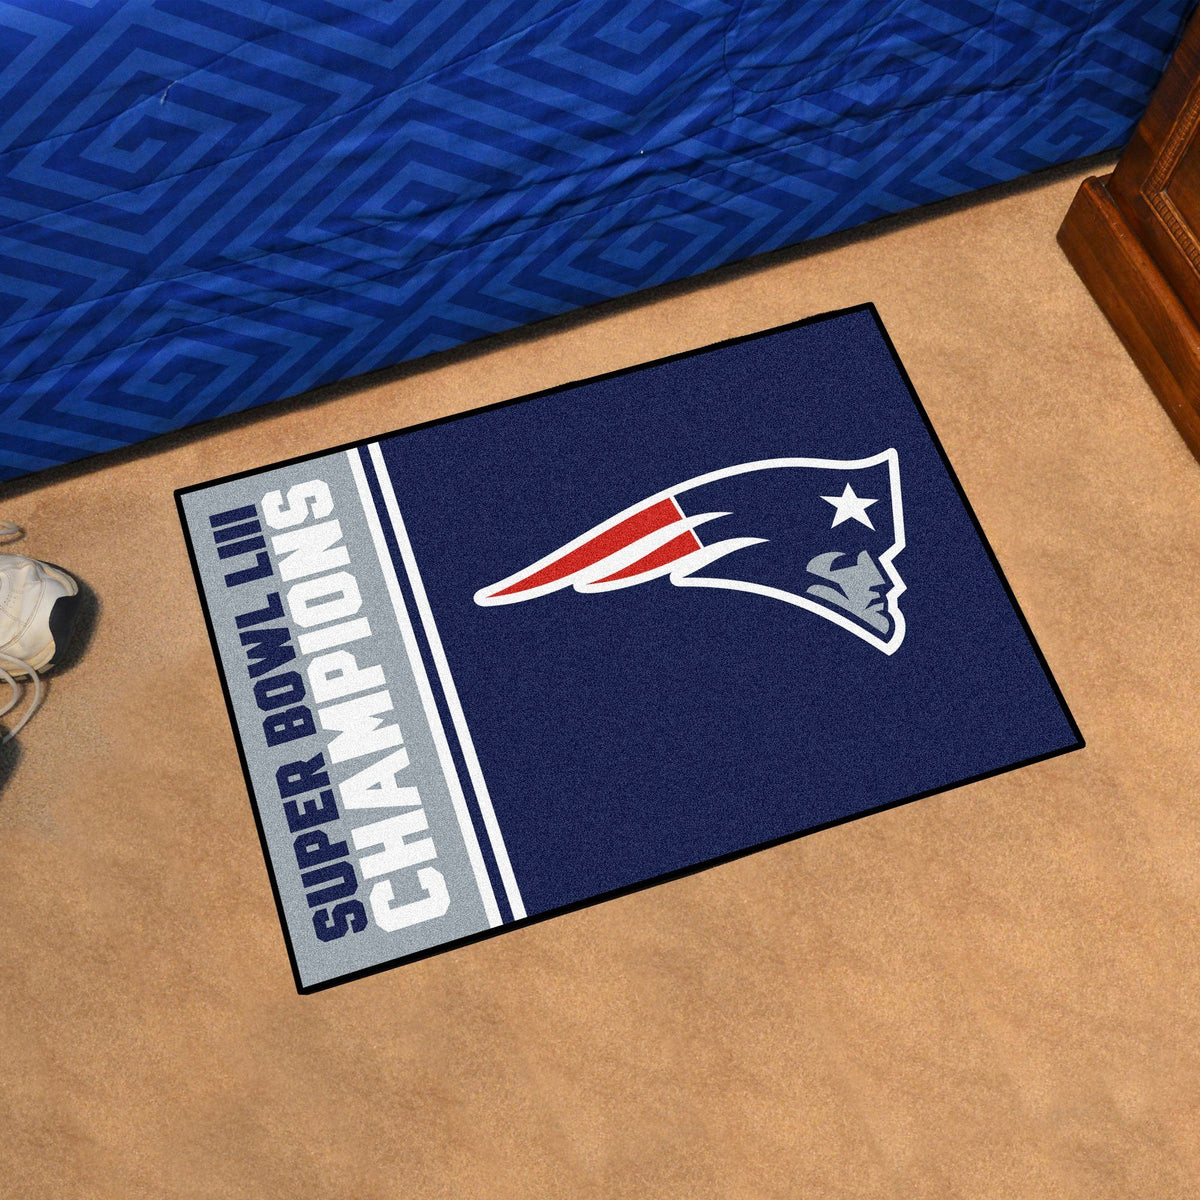 NFL - Kansas City Chiefs Super Bowl LIV Starter Mat NFL Mats, Rectangular Mats, Championship Starter Mat, NFL, Home Fan Mats New England Patriots 2